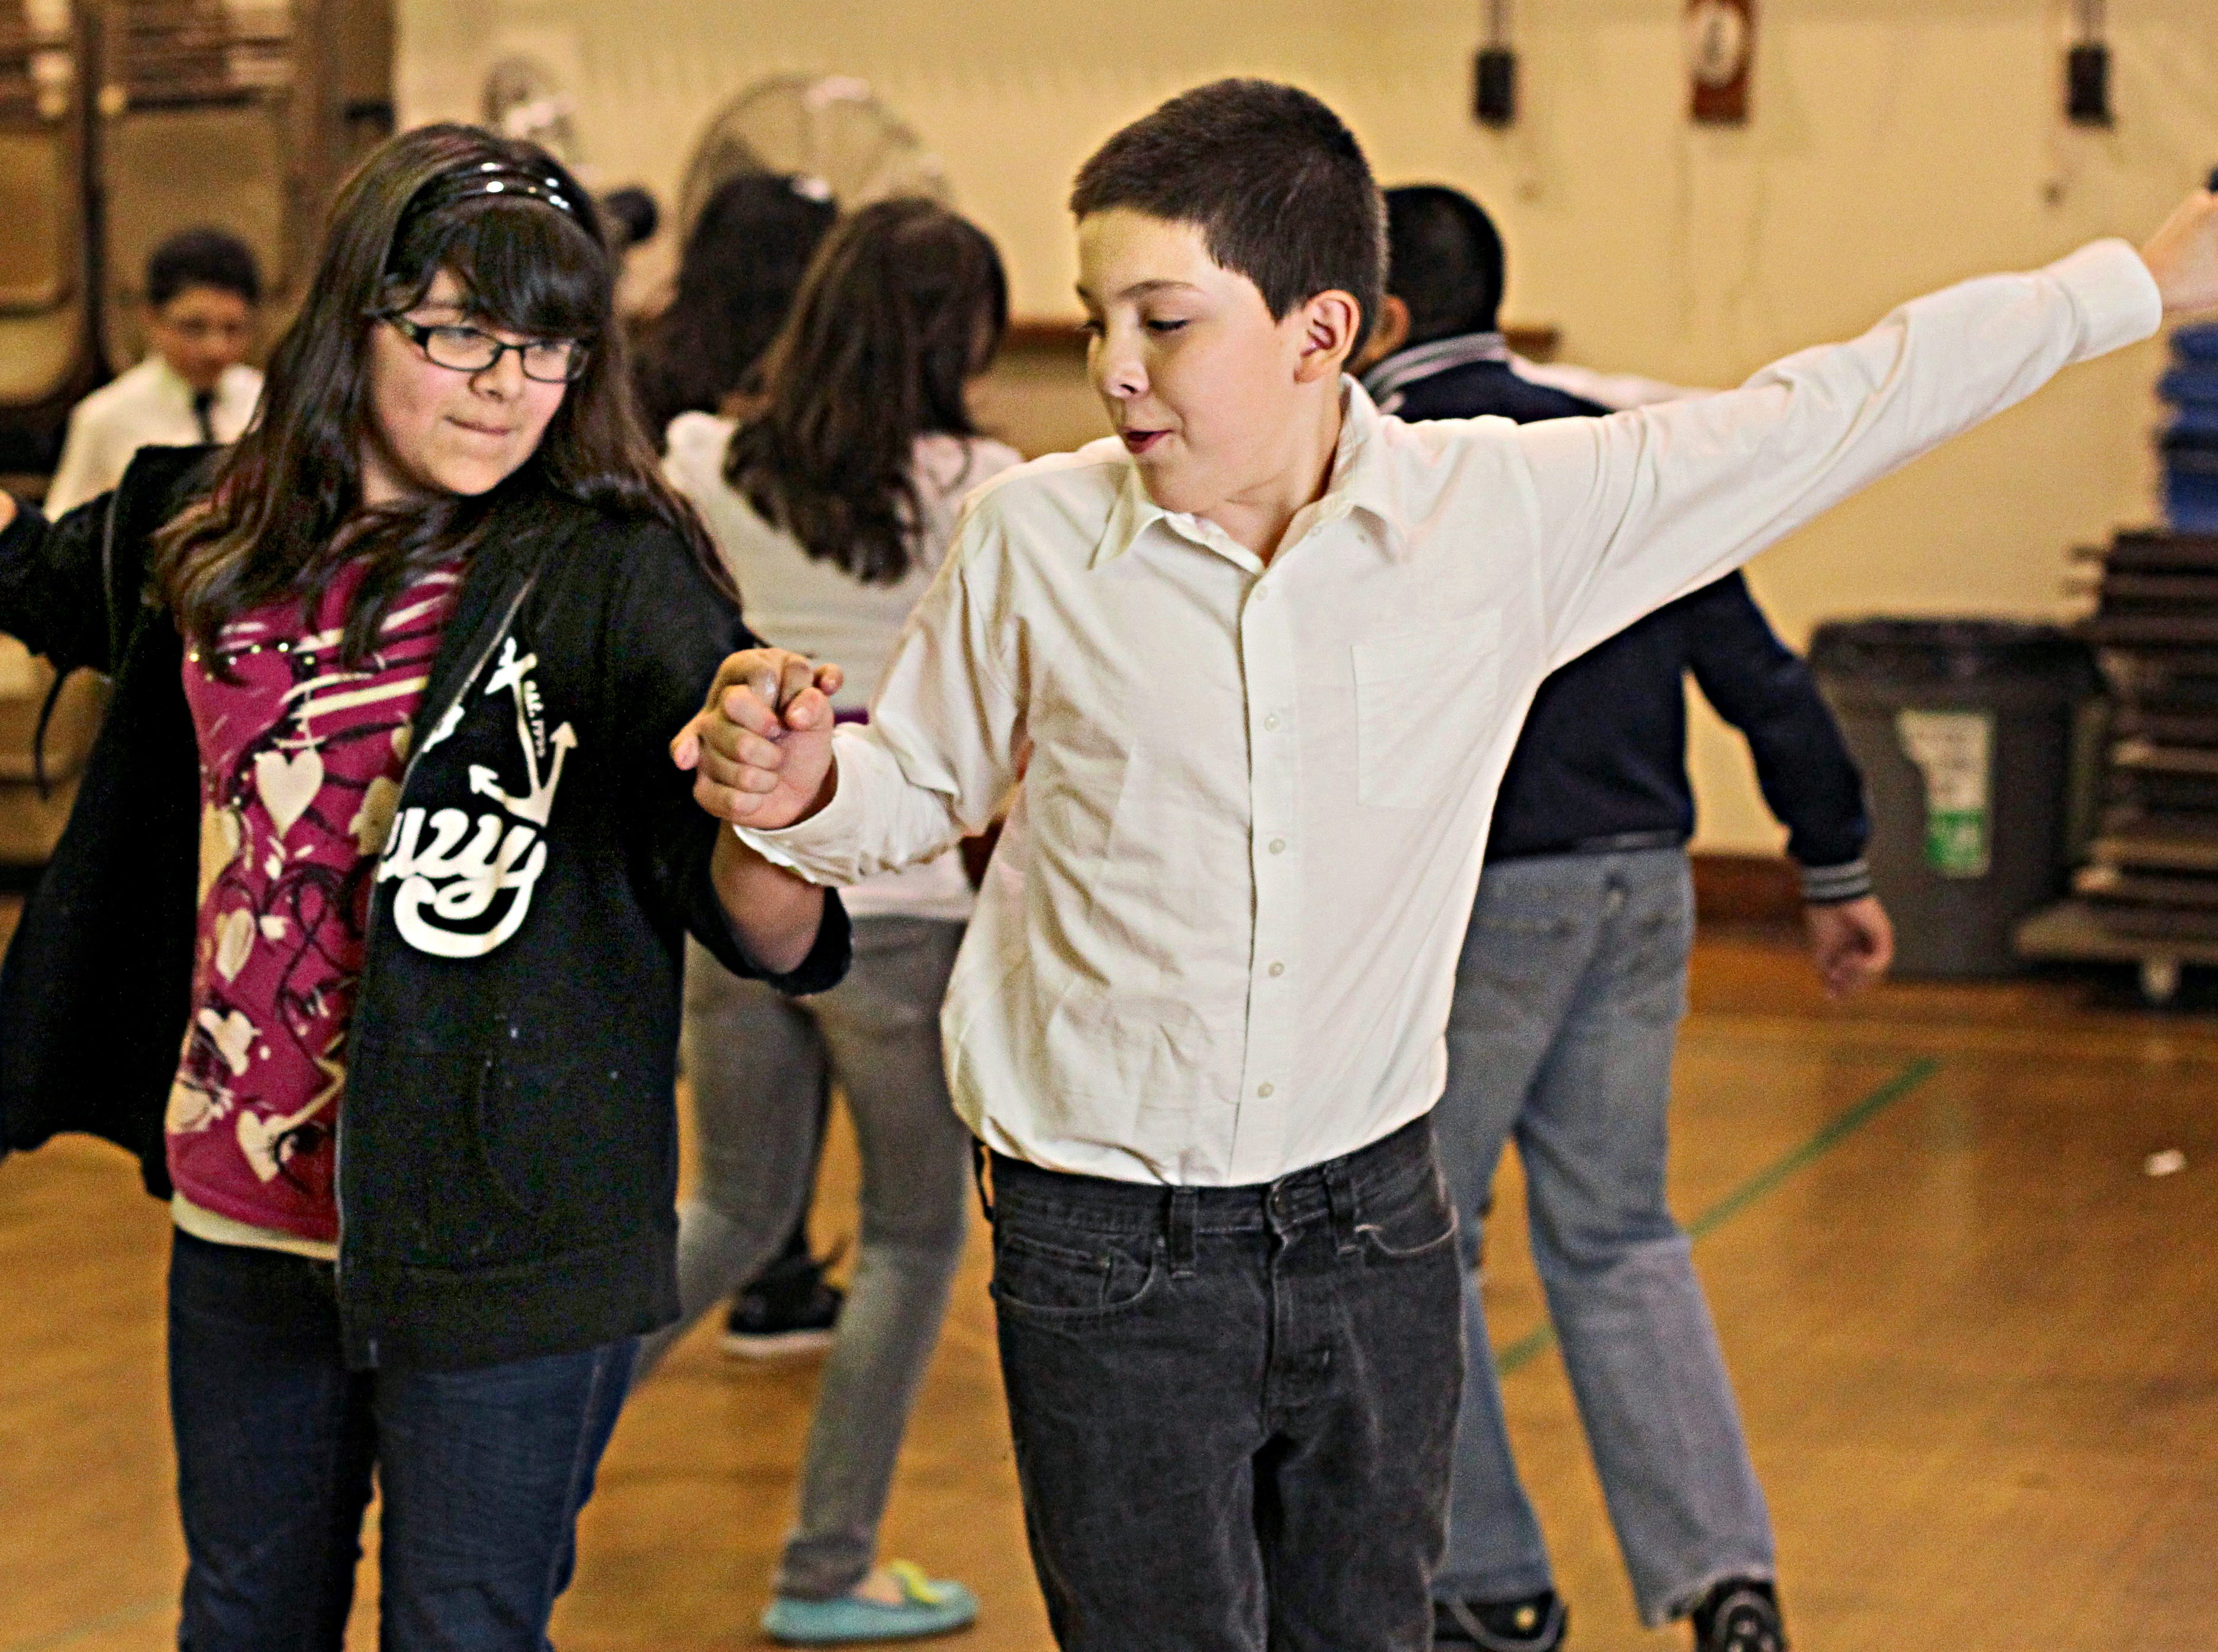 2011: At Vieau School, Isabella Hernandez dances with Joseluis Garza.